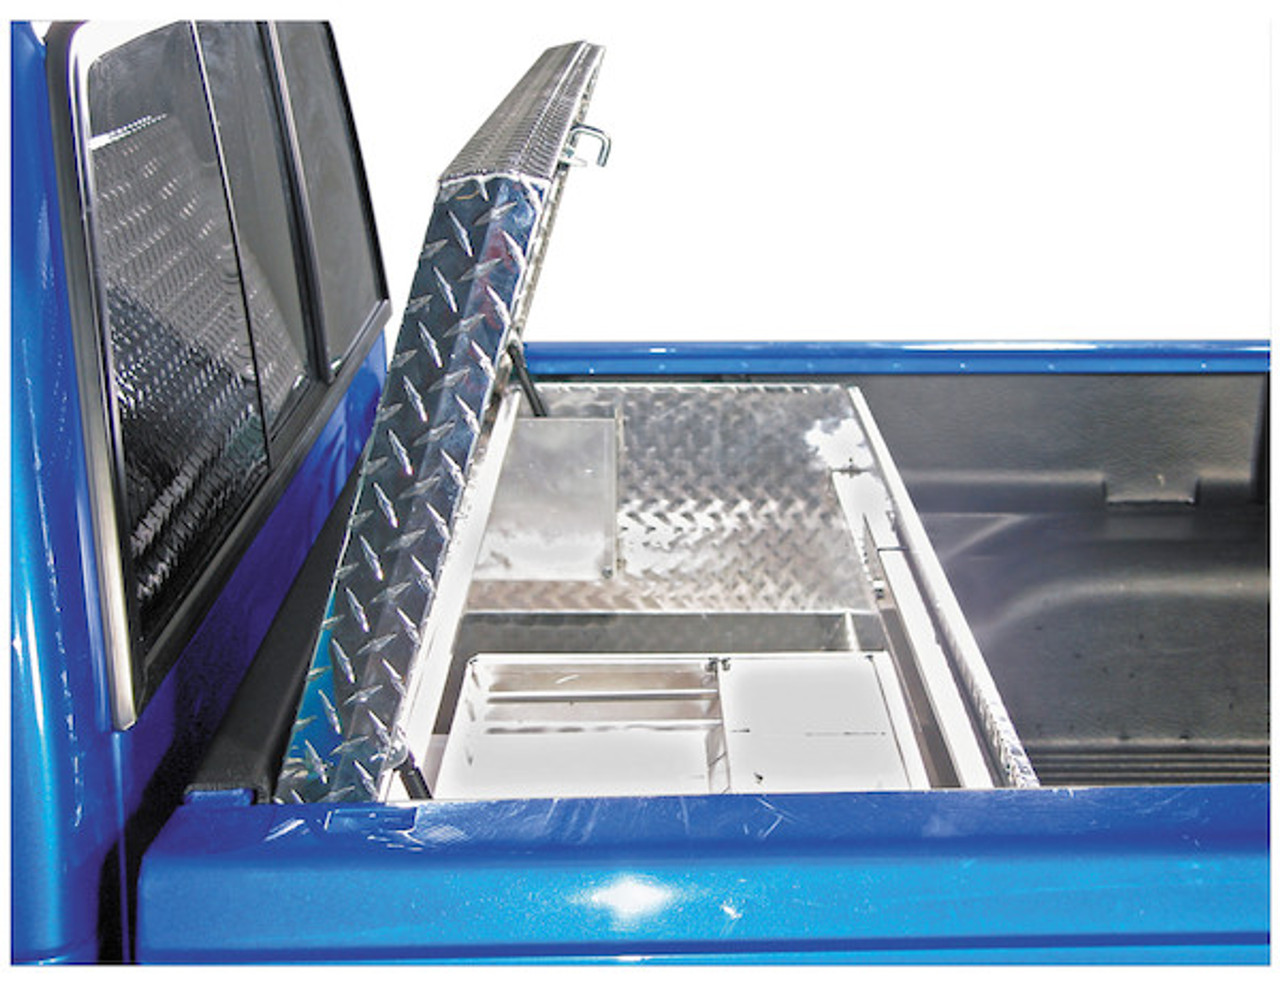 1712030 BUYERS DIAMOND TREAD ALUMINUM ALL-PURPOSE CHEST WITH ANGLED BASE TOOLBOX